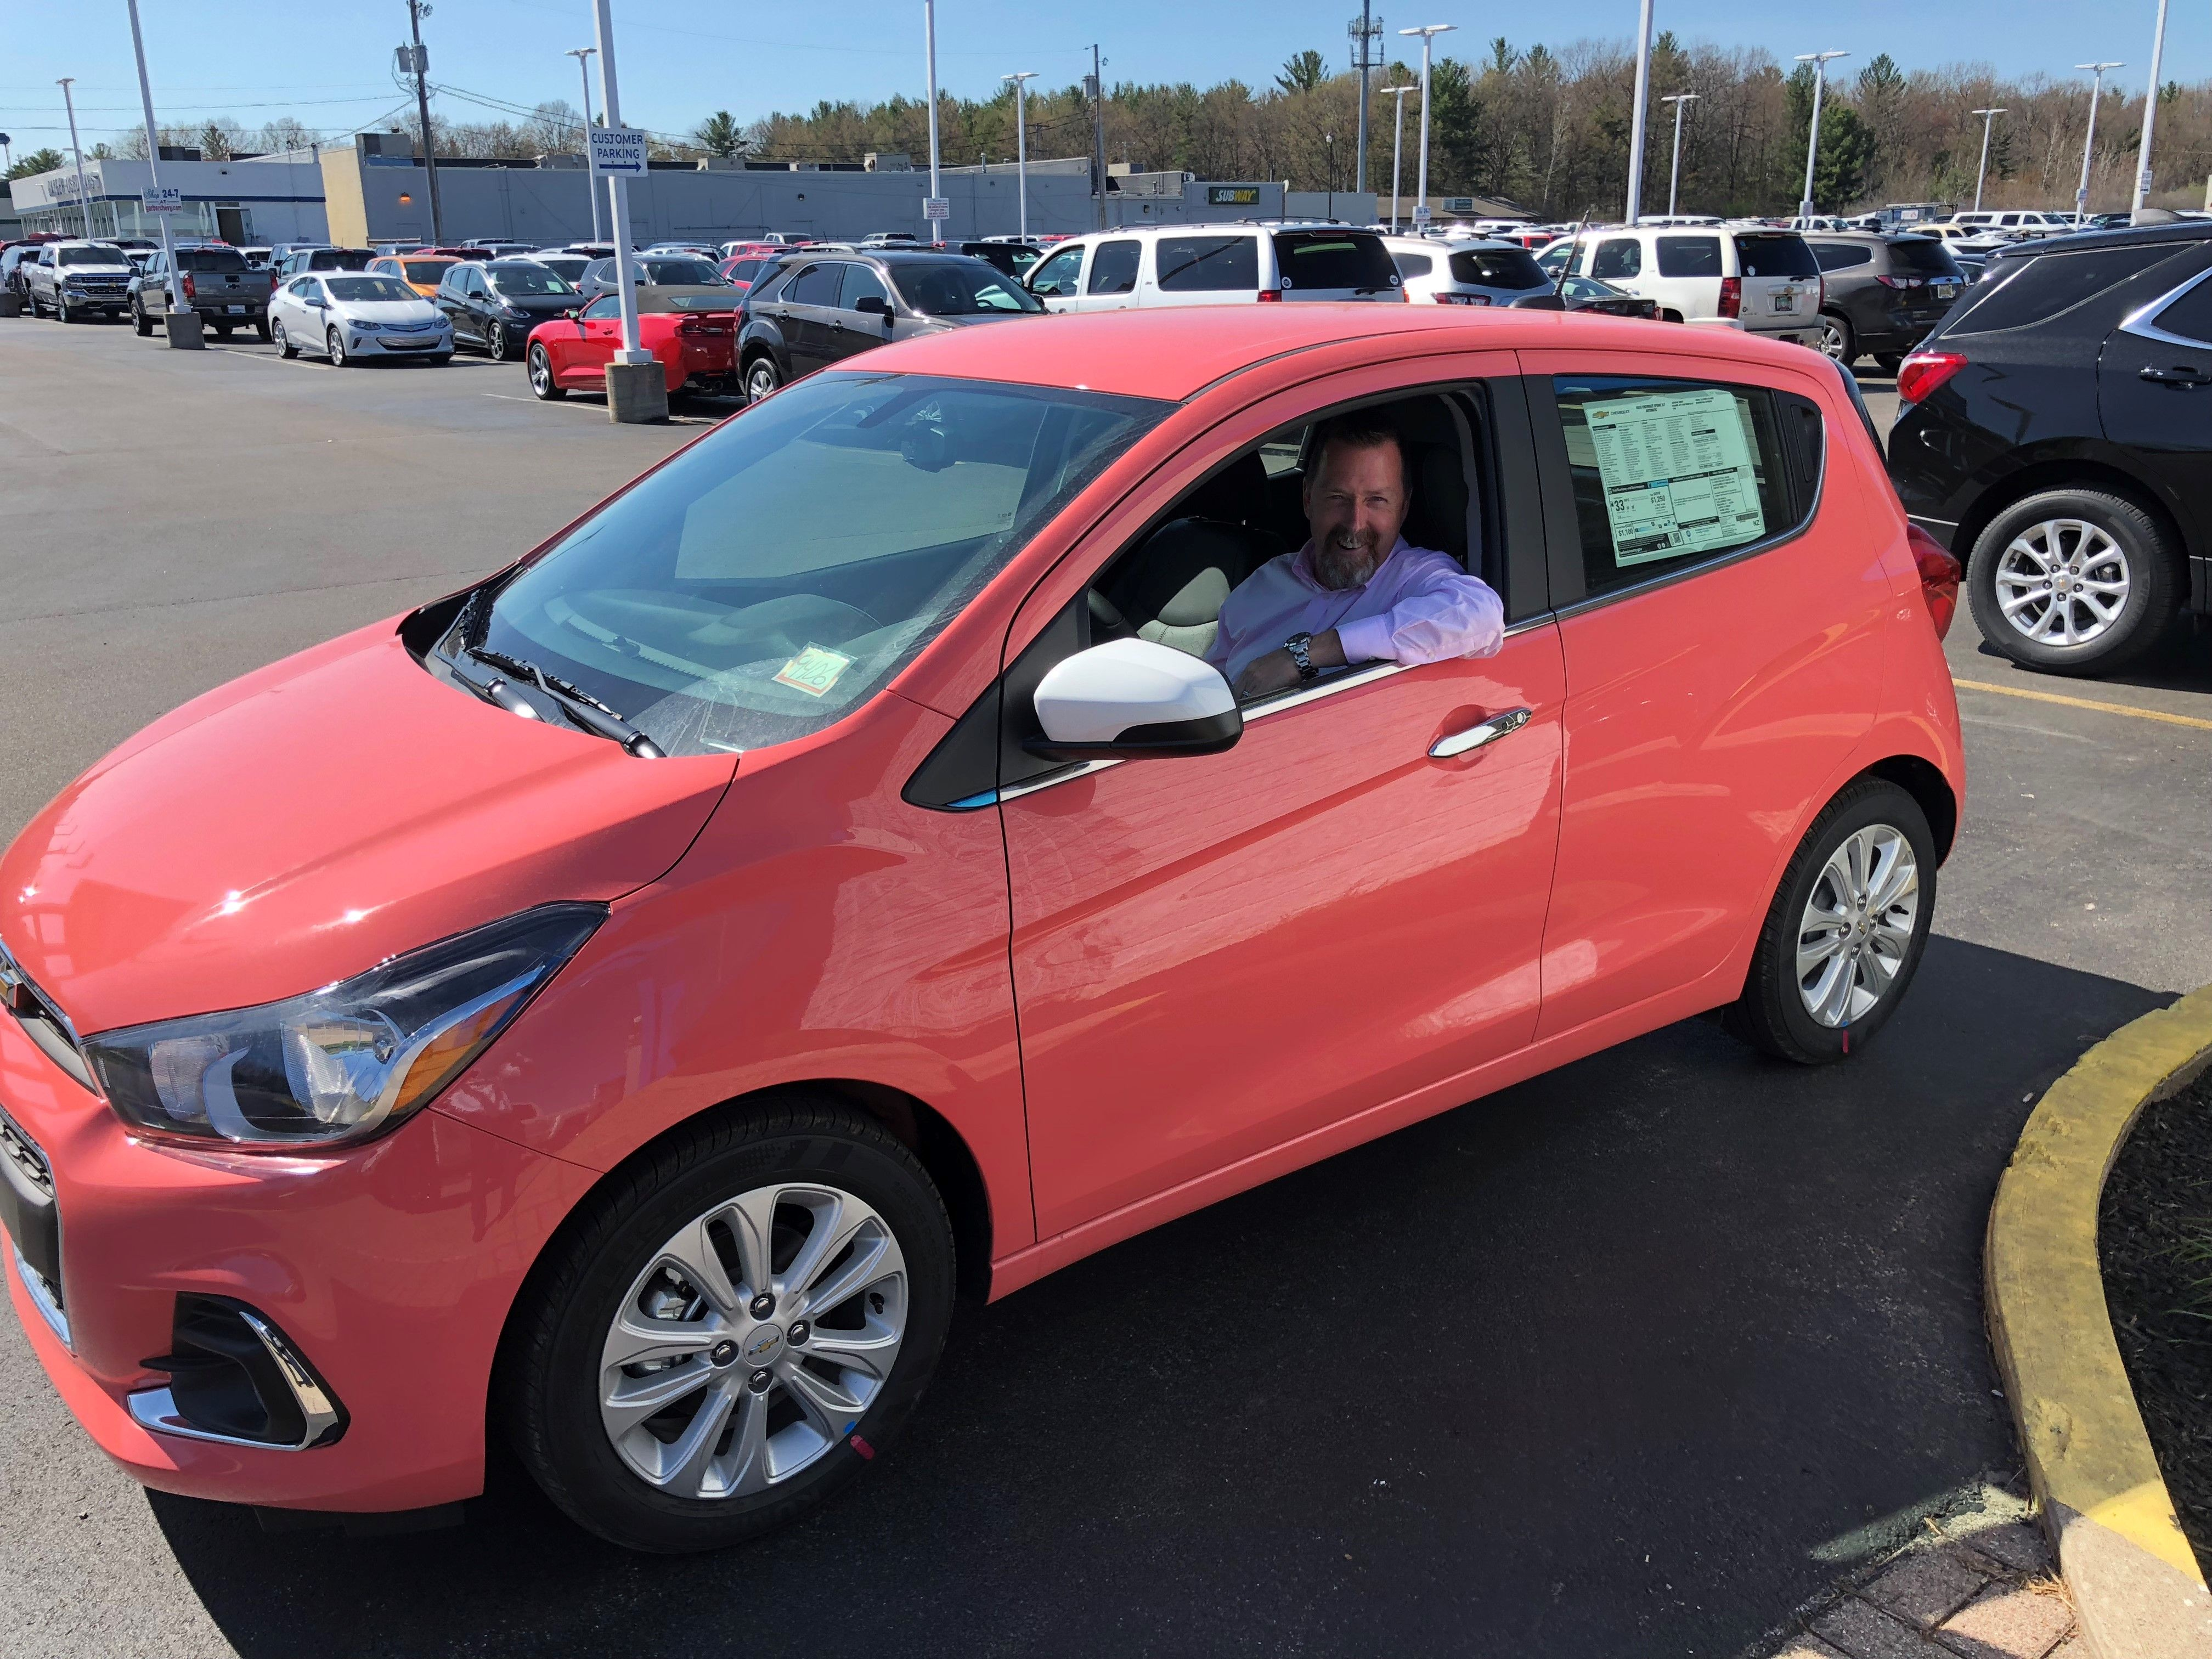 Pink Chevy Spark in Sorbet! Who says cars have to be boring? #pinkcar #Chevrolet #Spark #cutecar #compactcar #pink #funcar